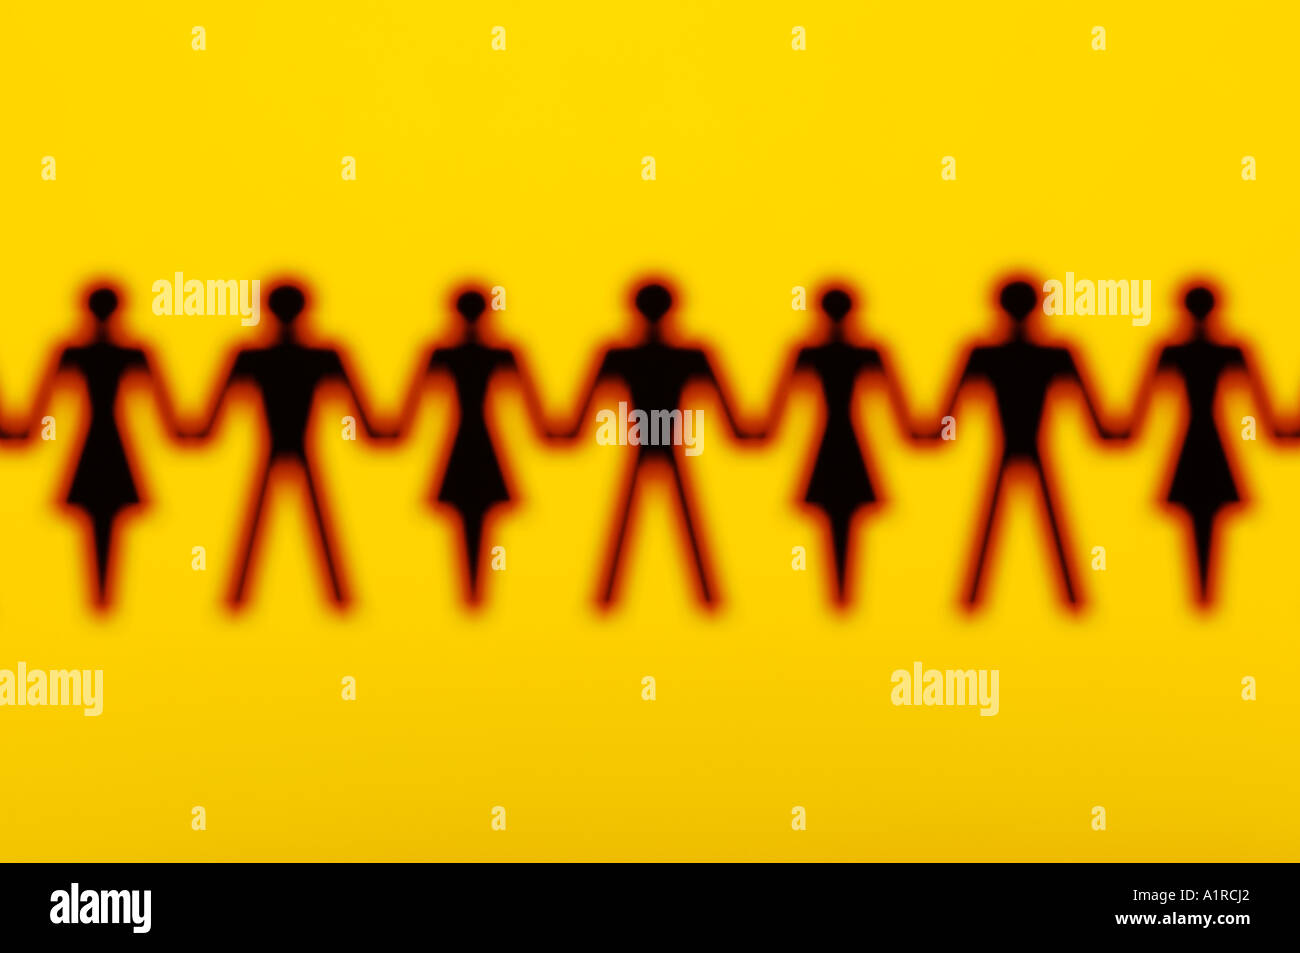 Paper chain people - Stock Image